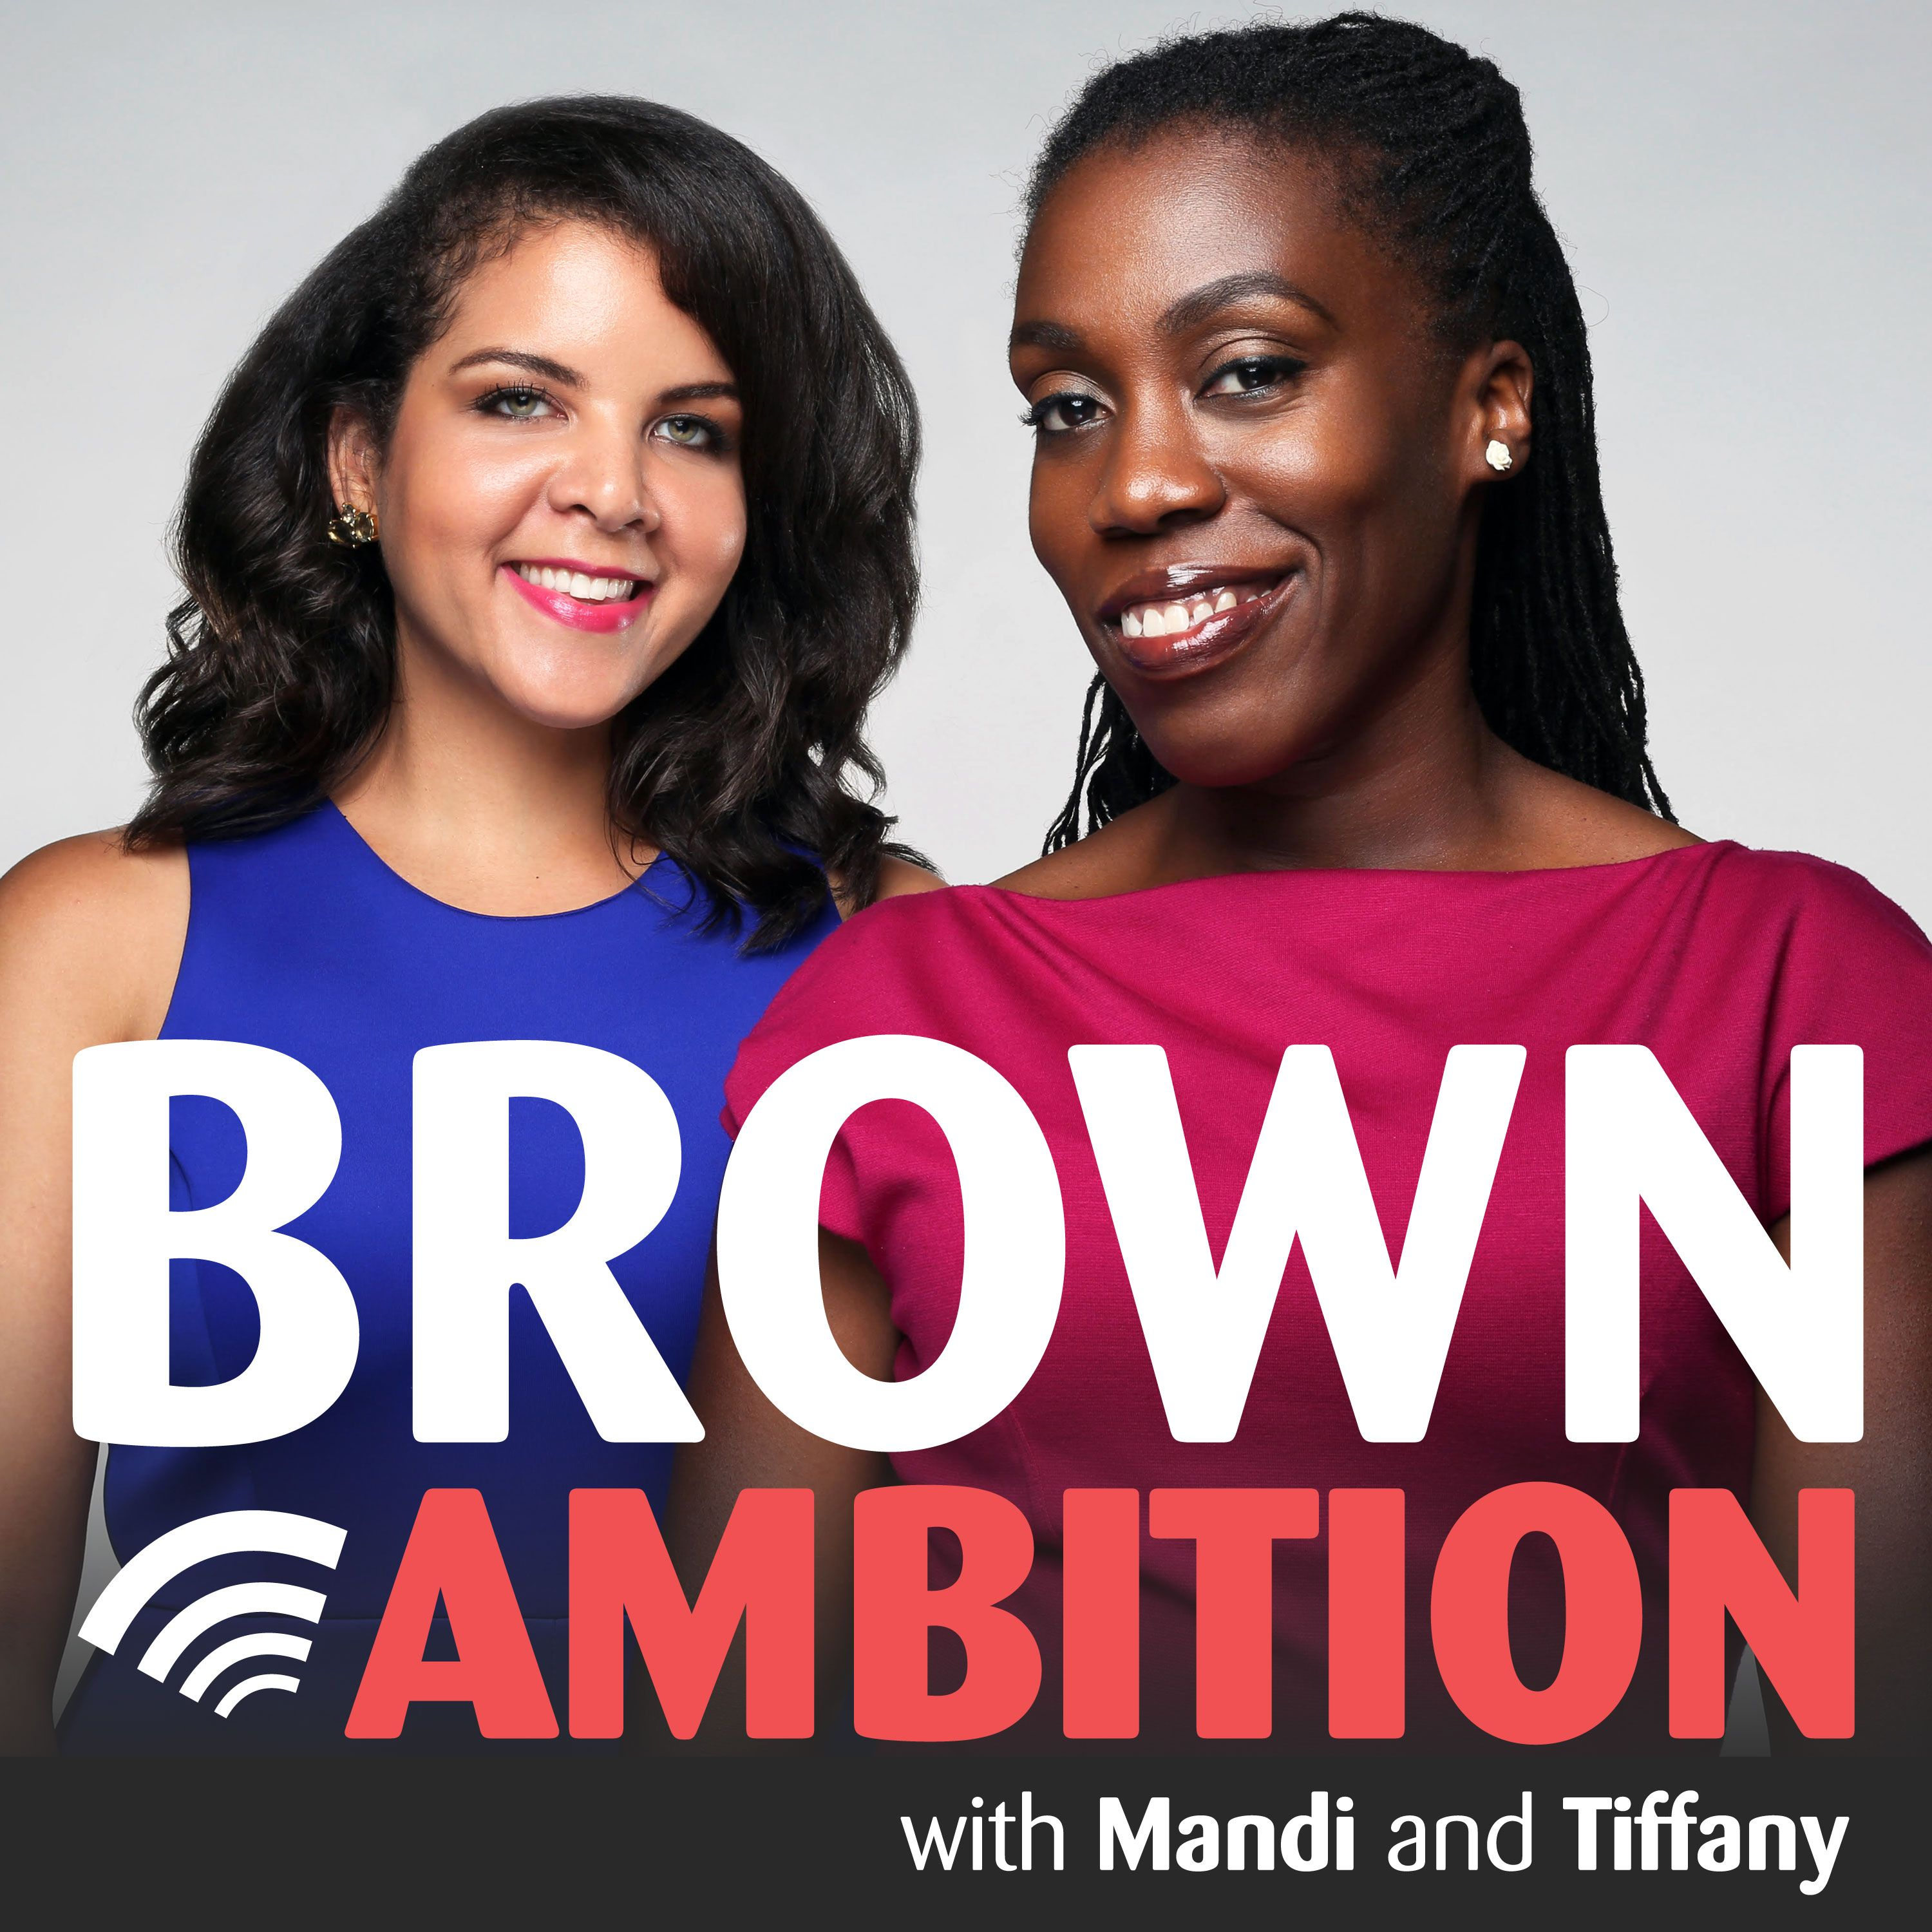 Brown Ambition Podcast – Brown Ambition is a weekly podcast about career,  business, building wealth and living in this brown skin.